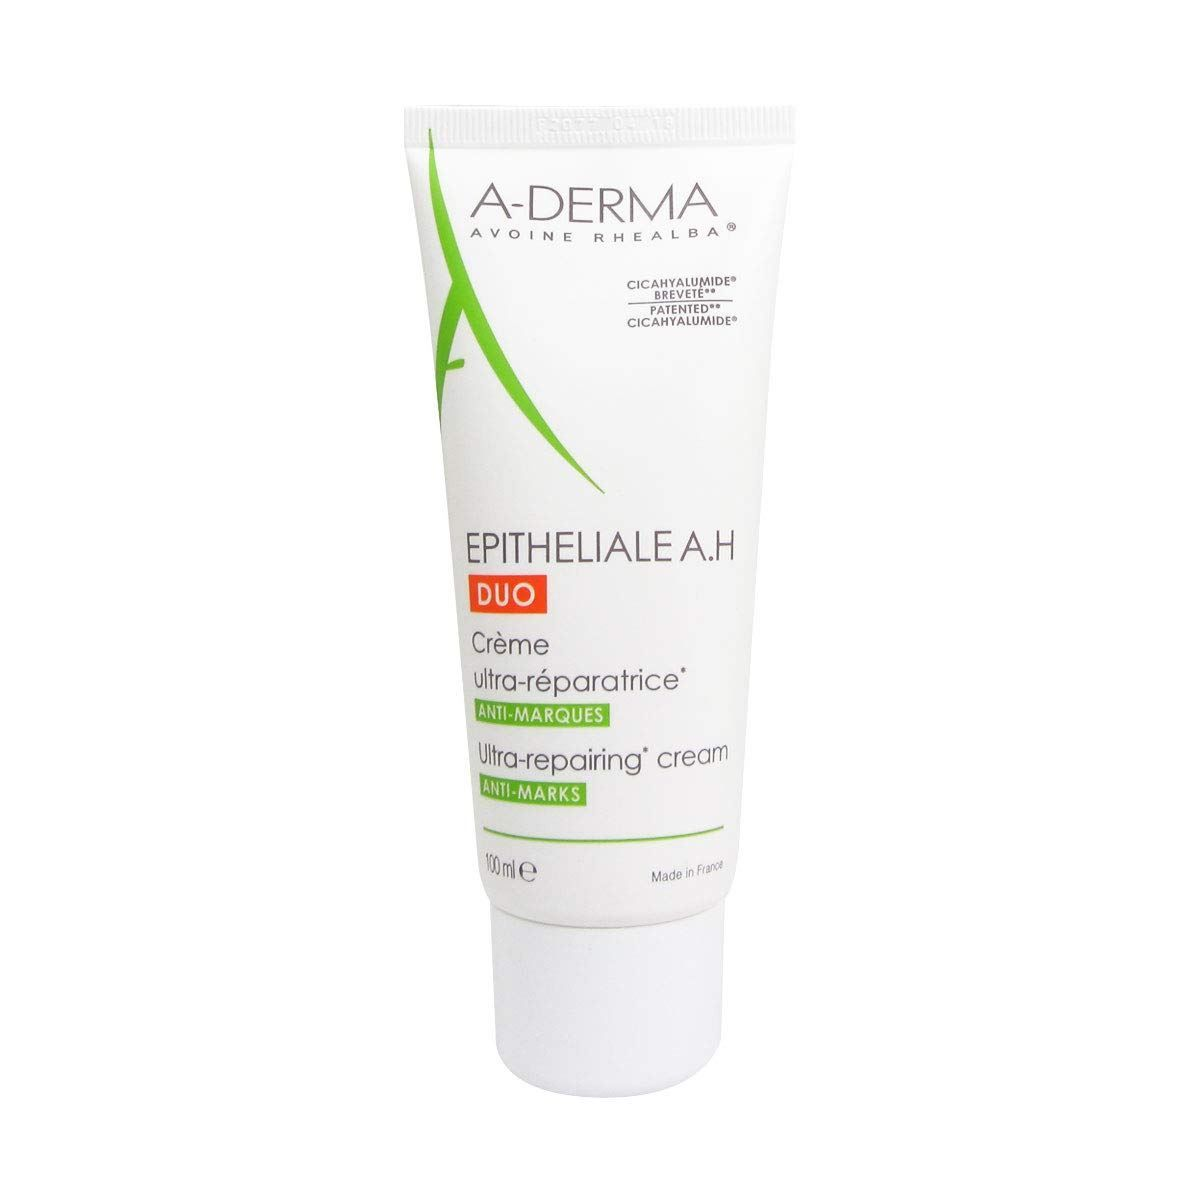 Epitheliale Ah Duo Restructuring Cream